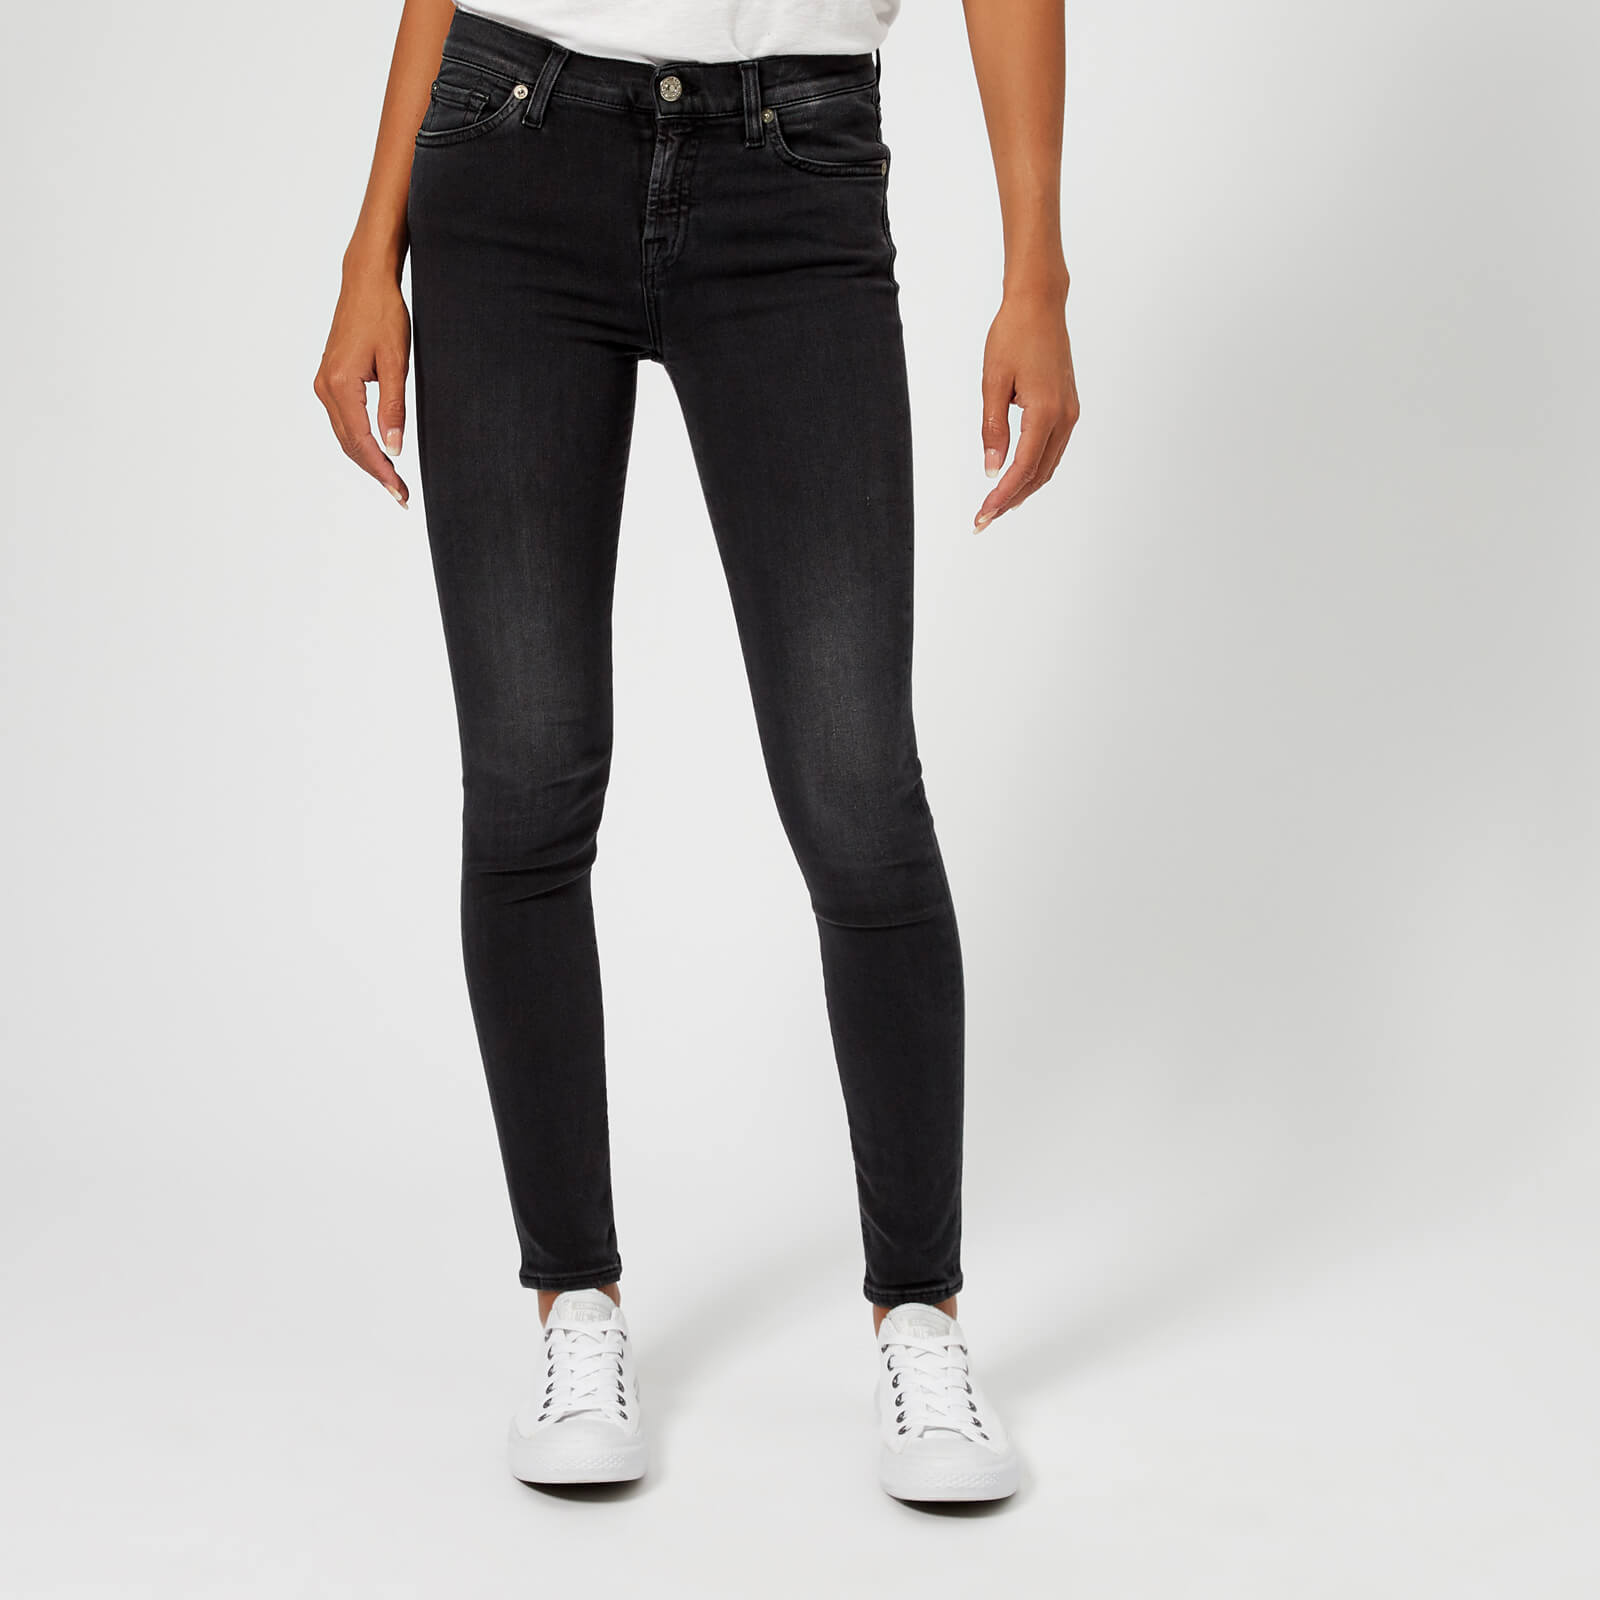 c88fde825c355f 7 For All Mankind Women's Skinny Slim Illusion Jeans - Rebel Clothing |  TheHut.com